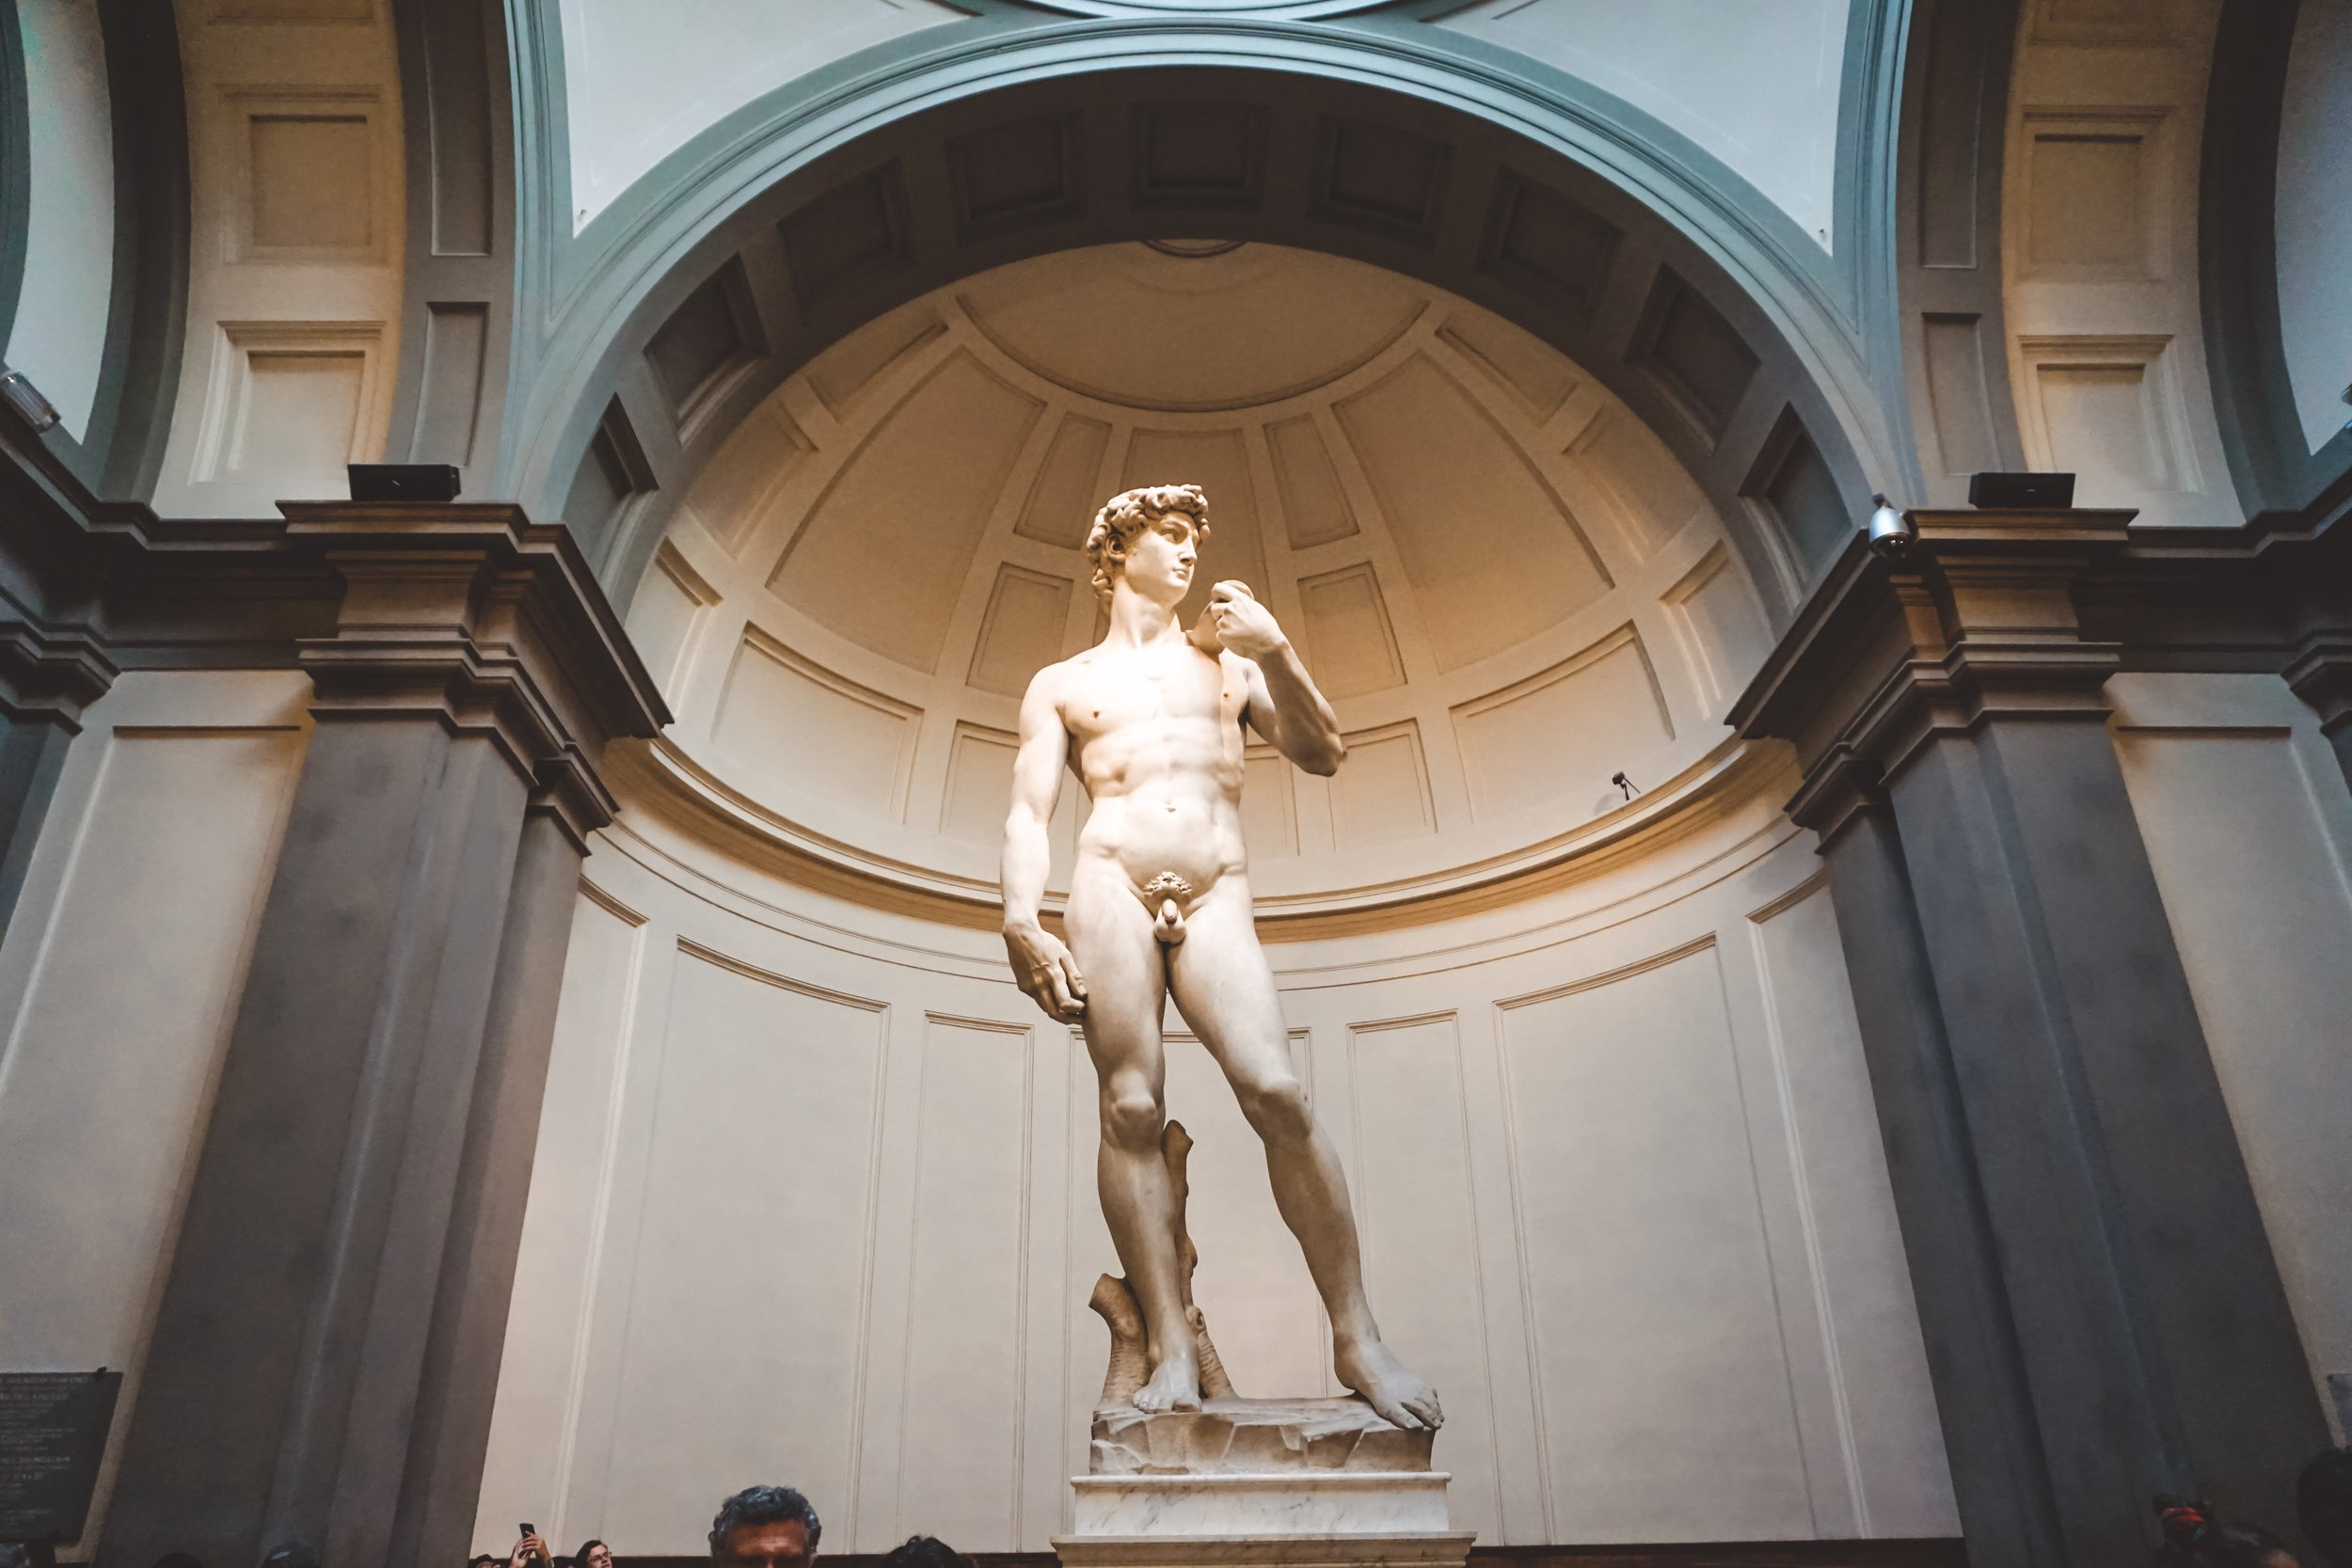 You can begin to understand the eternal significance of the Statue of David